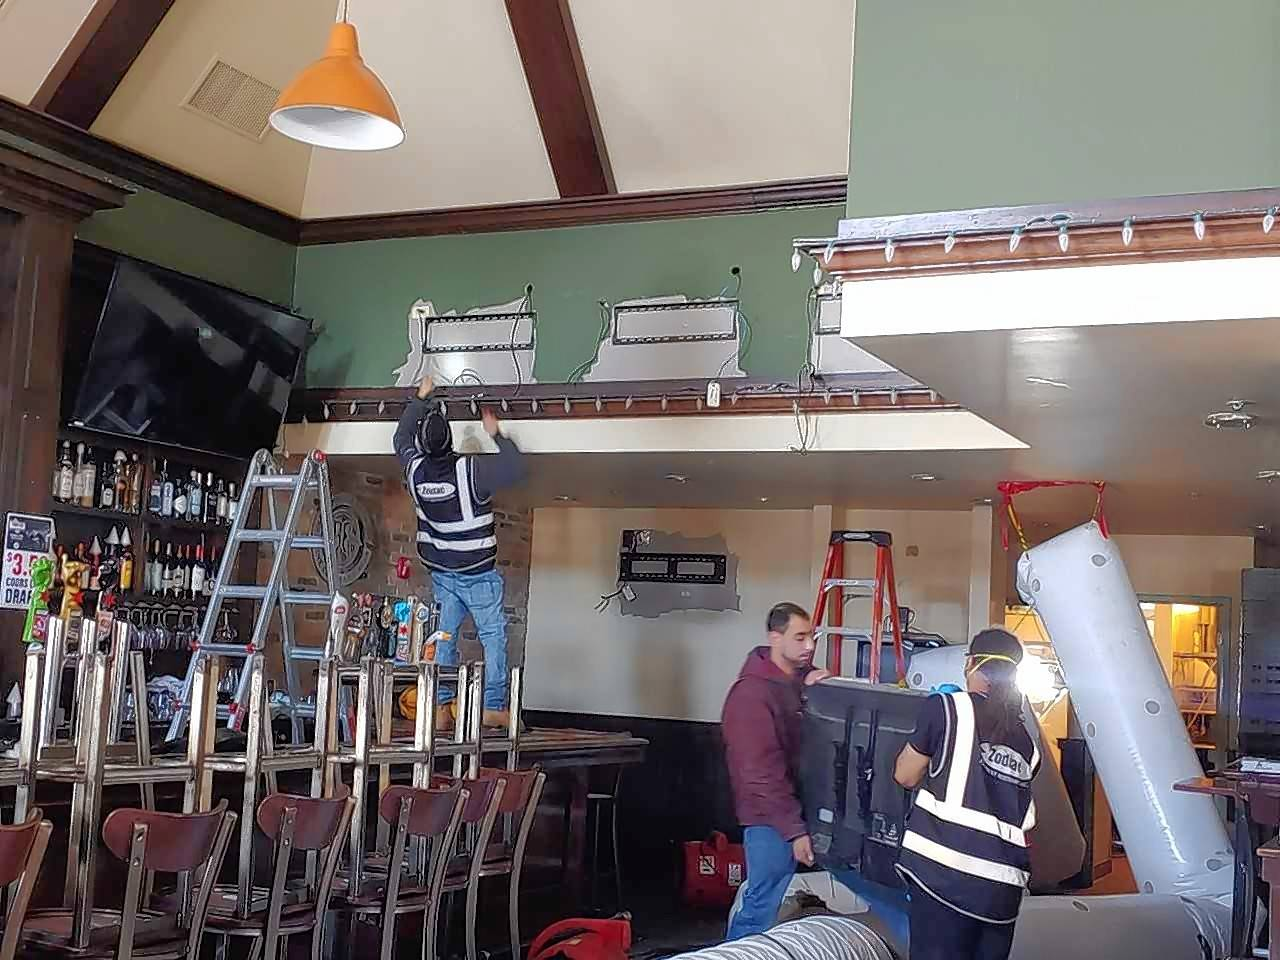 Work is ongoing inside Durty Nellie's in downtown Palatine as it recovers from a fire that's left the popular bar and music venue closed since Jan. 25. Owners hope to have most operations up and running within the month.